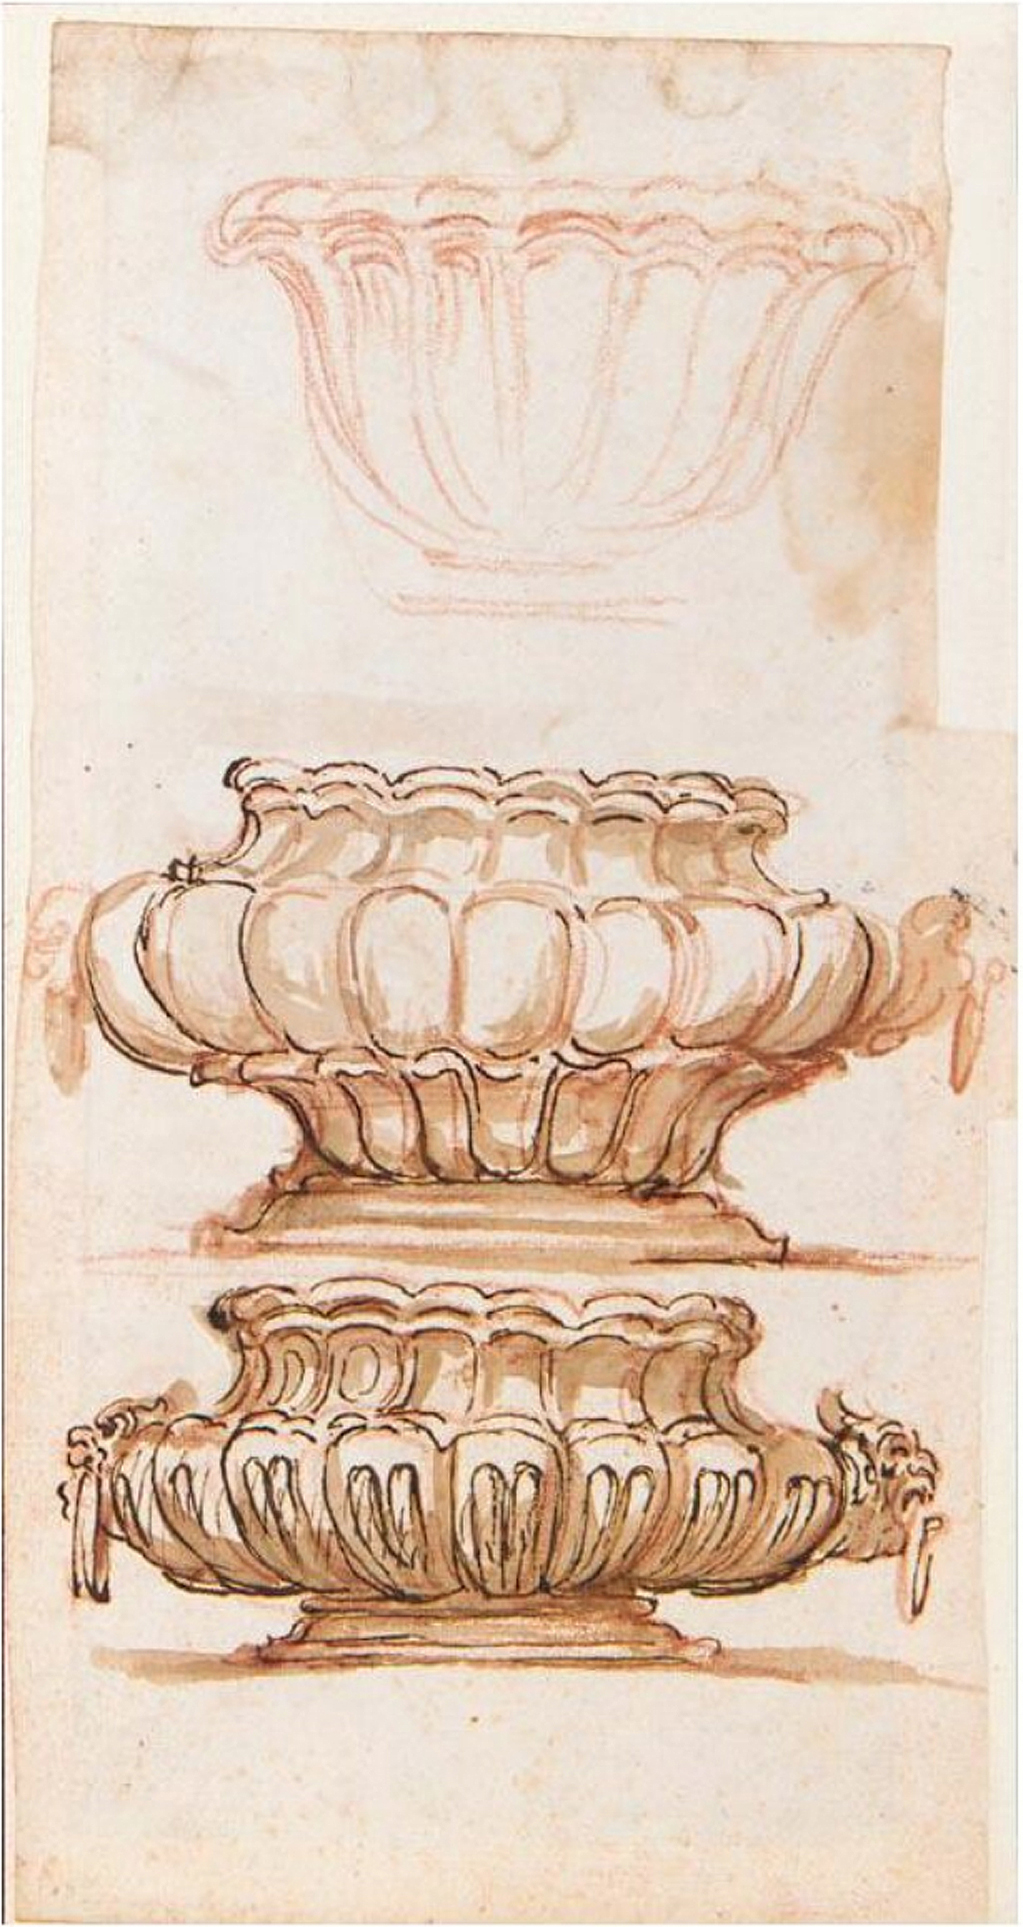 13B Il Volterrano 1611to90 designs for a silver basin Sotheby s 6July2005 Lot 128